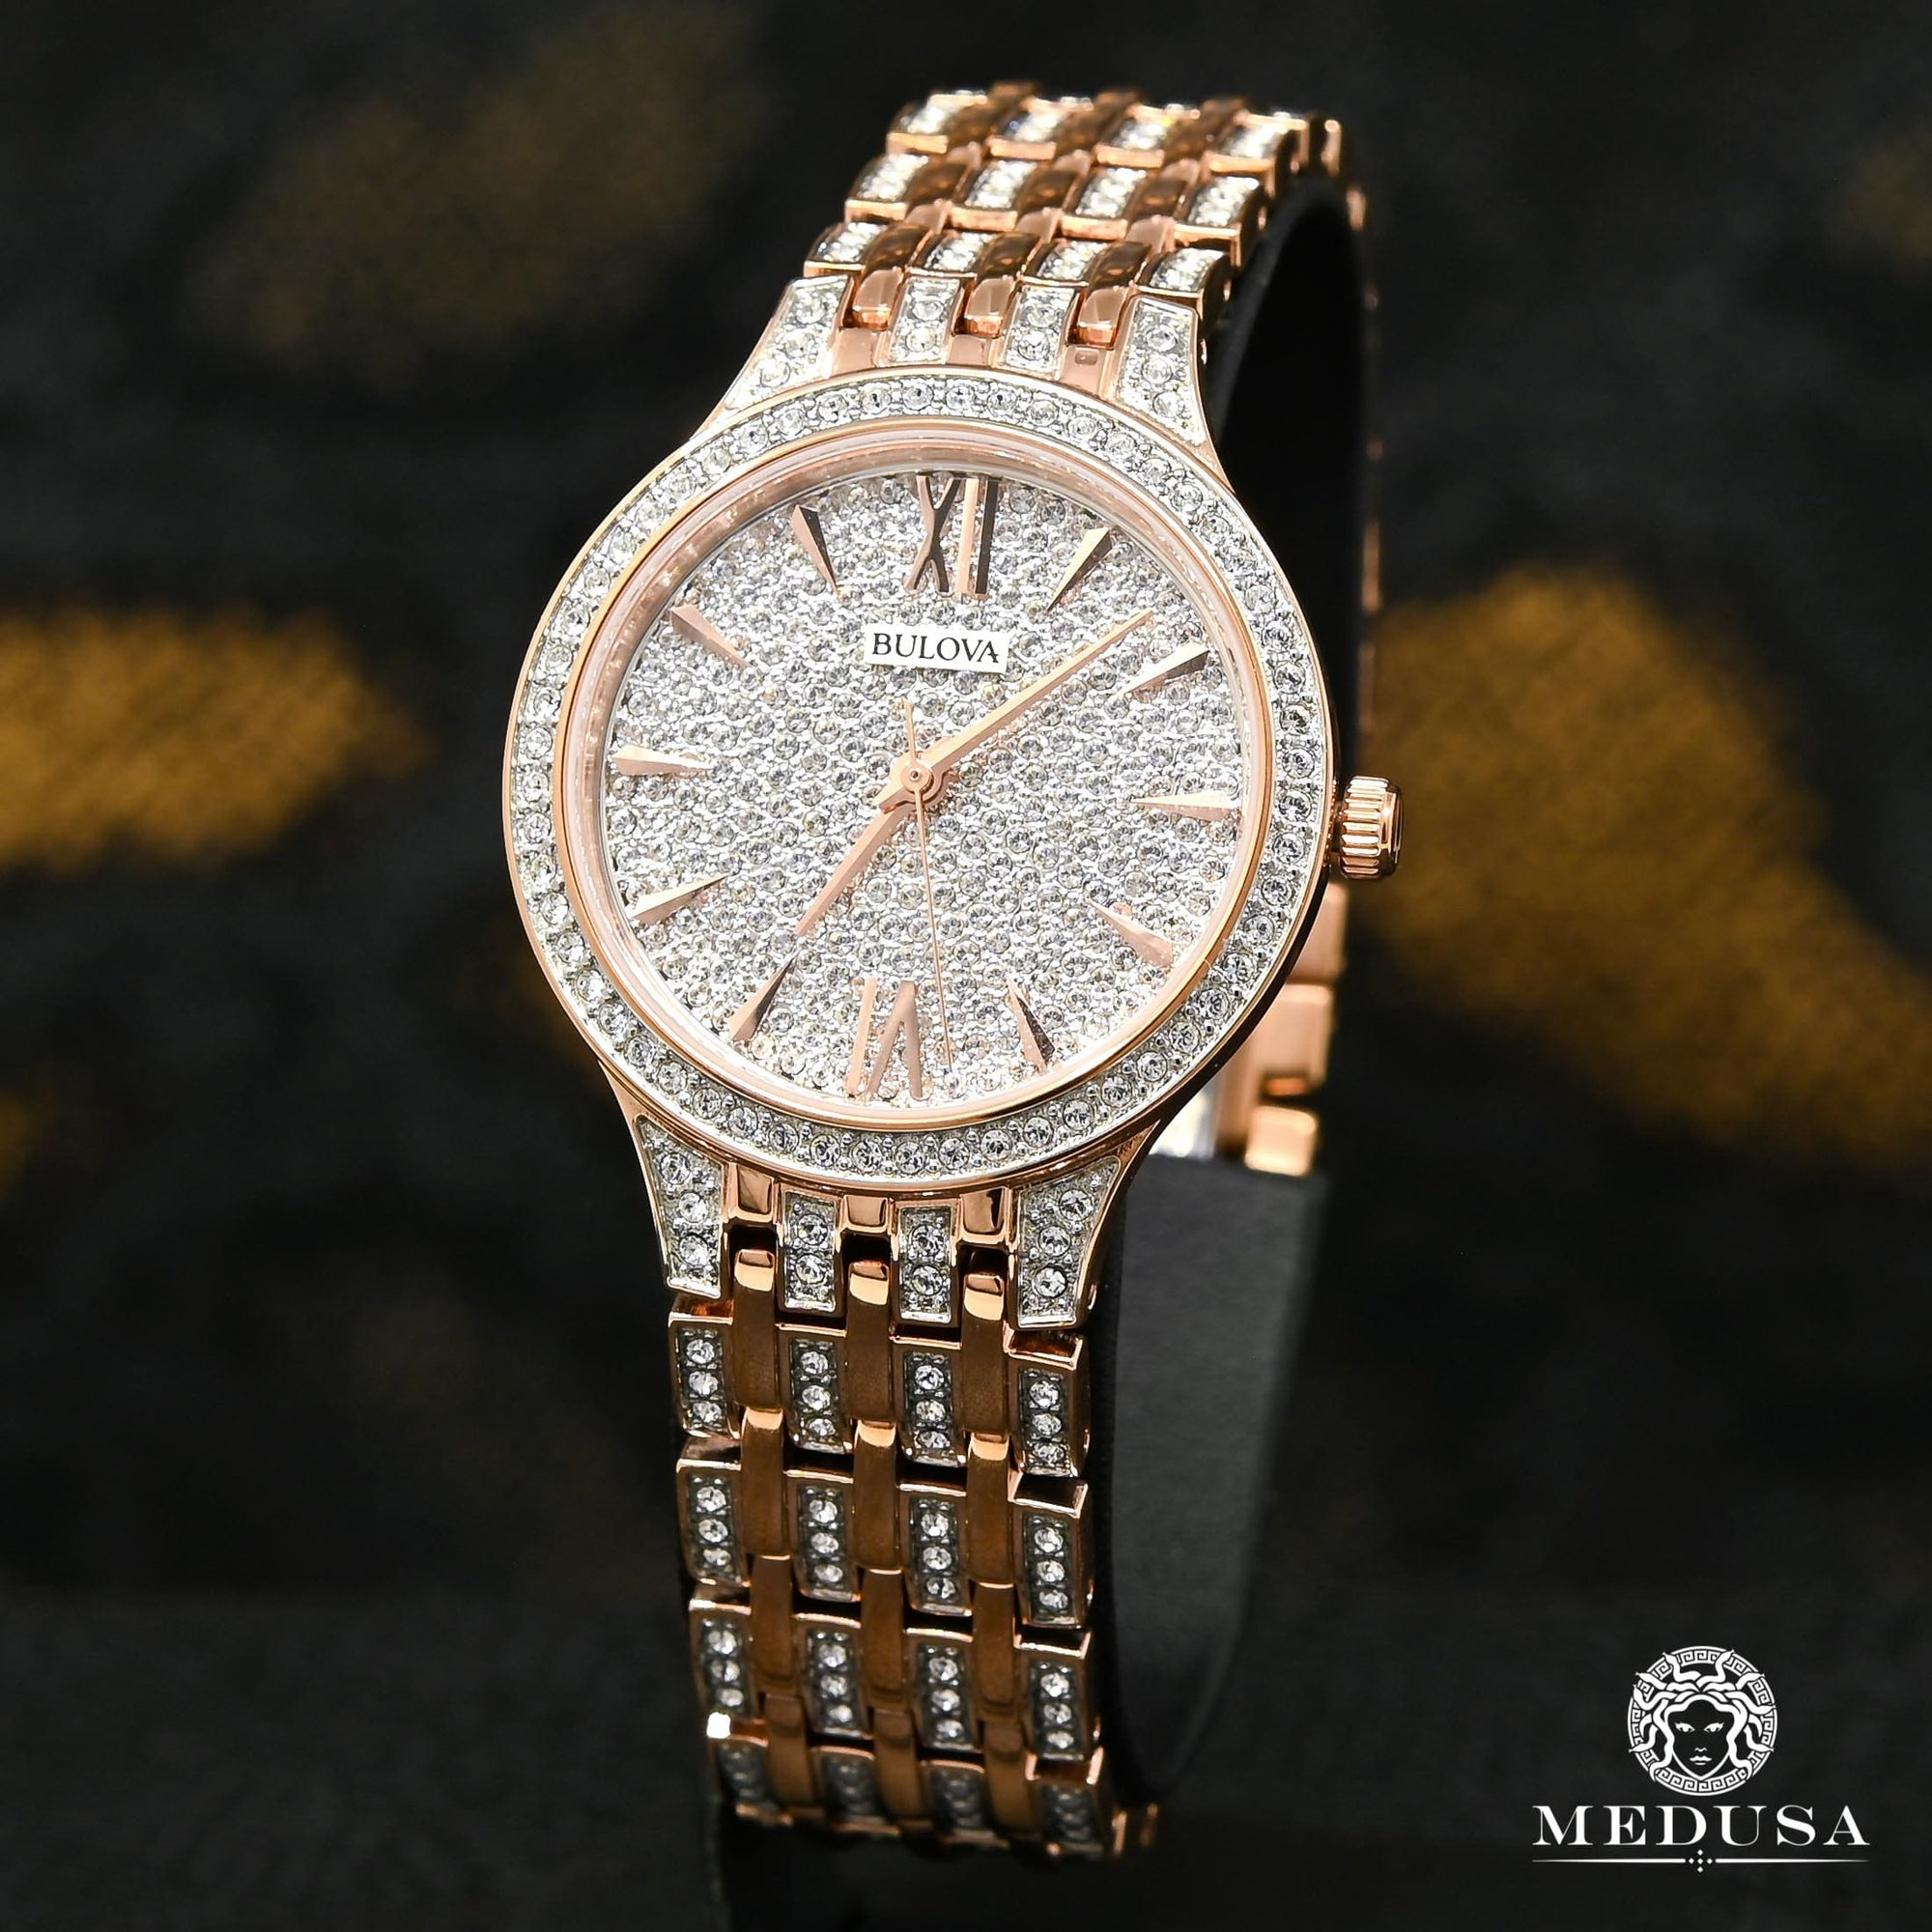 Bulova Watch Bulova Crystal Woman Watch - 98L235 Swarovski / Rose Gold